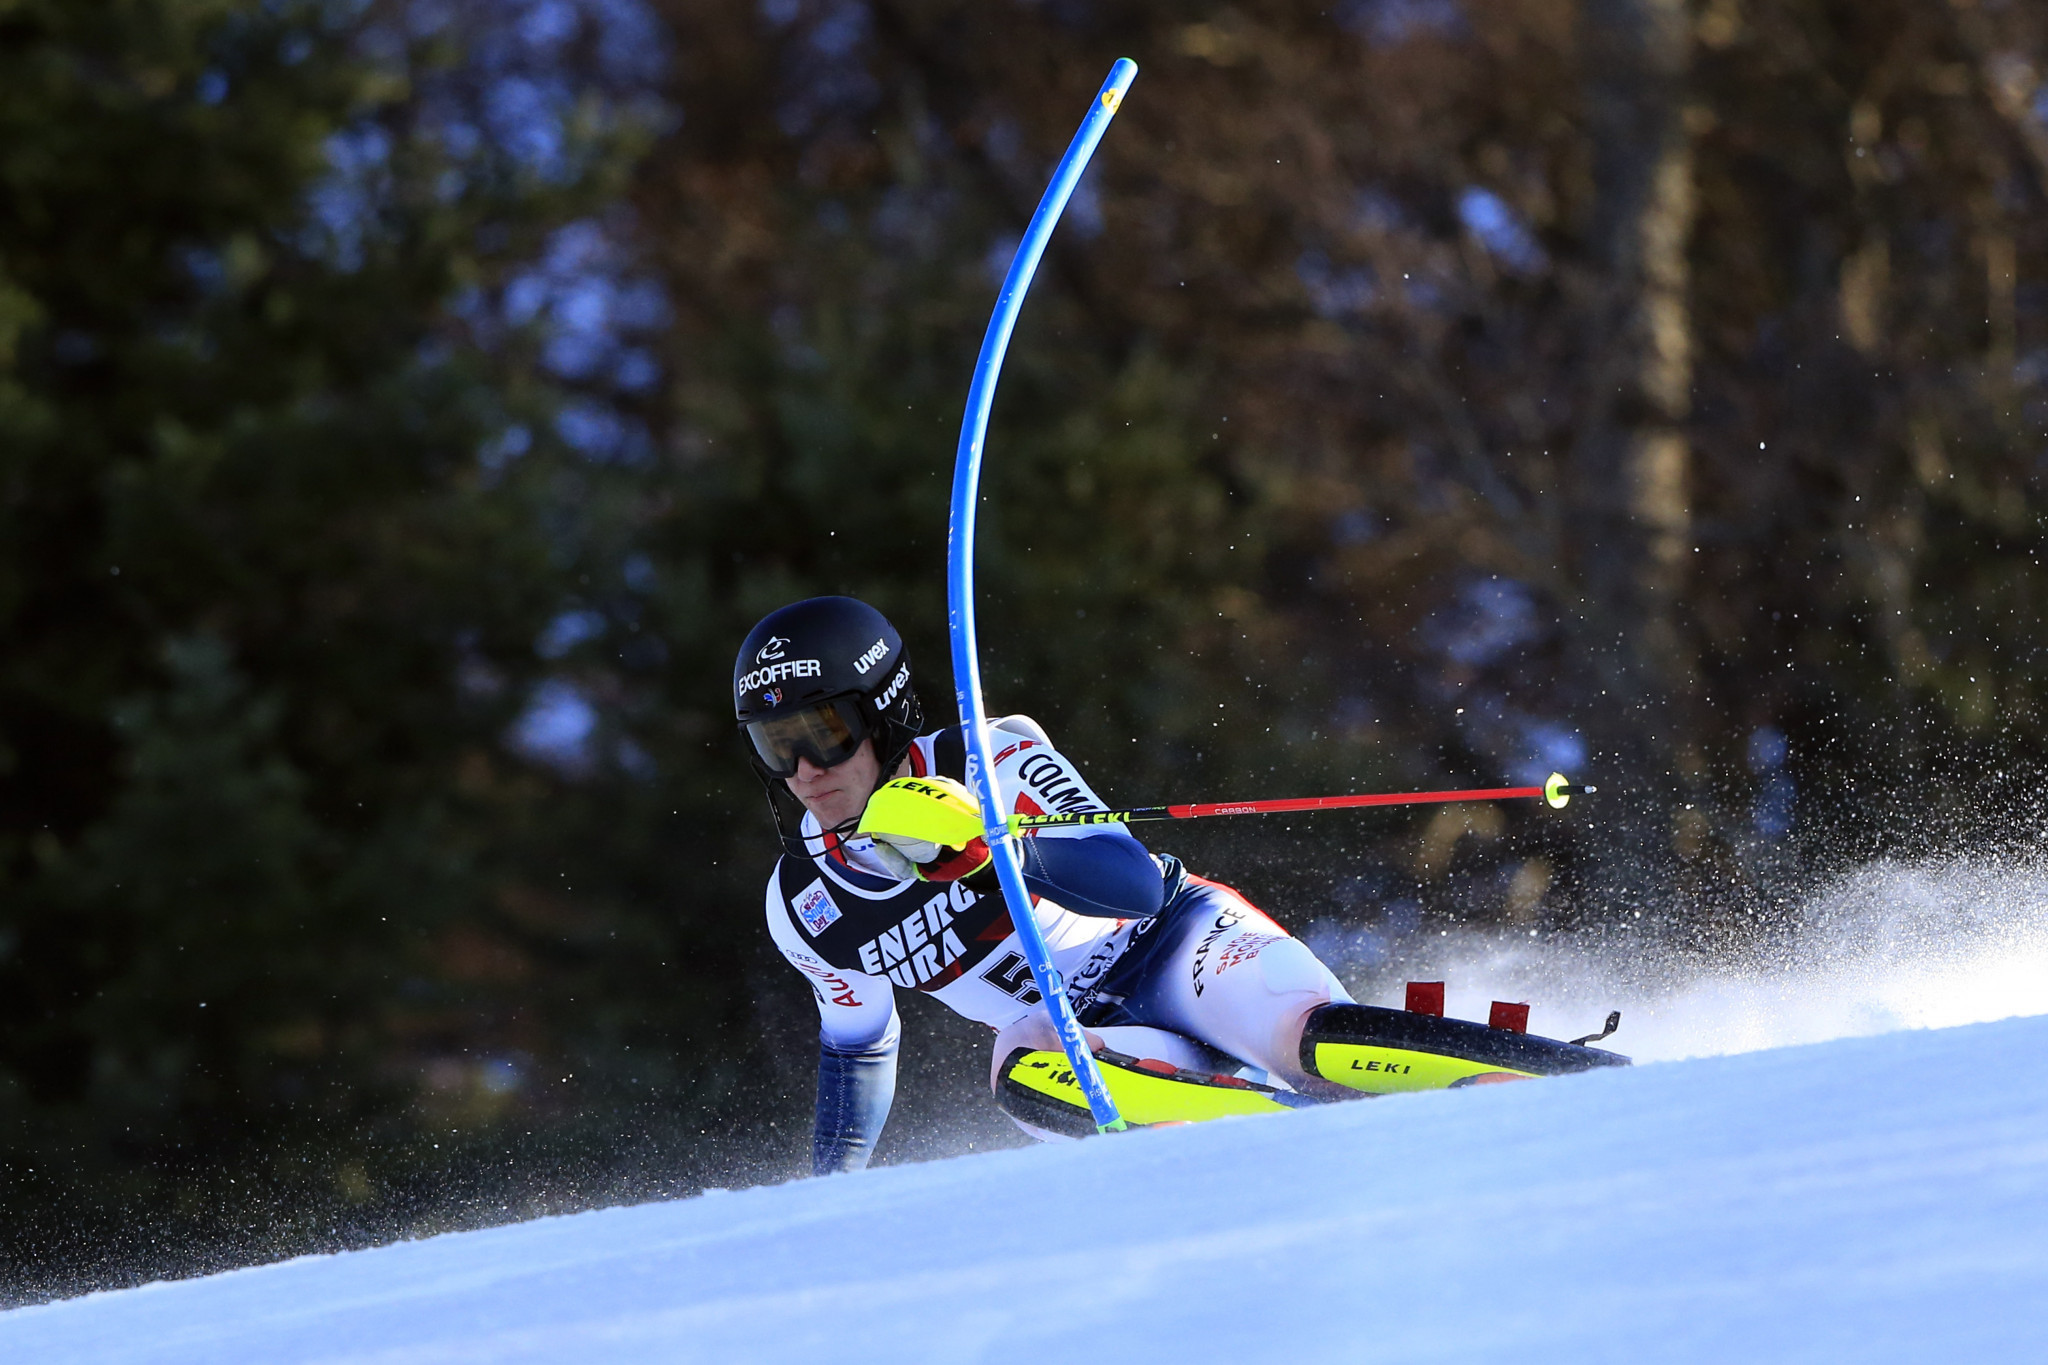 Noel goes top of FIS Alpine Ski World Cup slalom standings after storming win in Zagreb